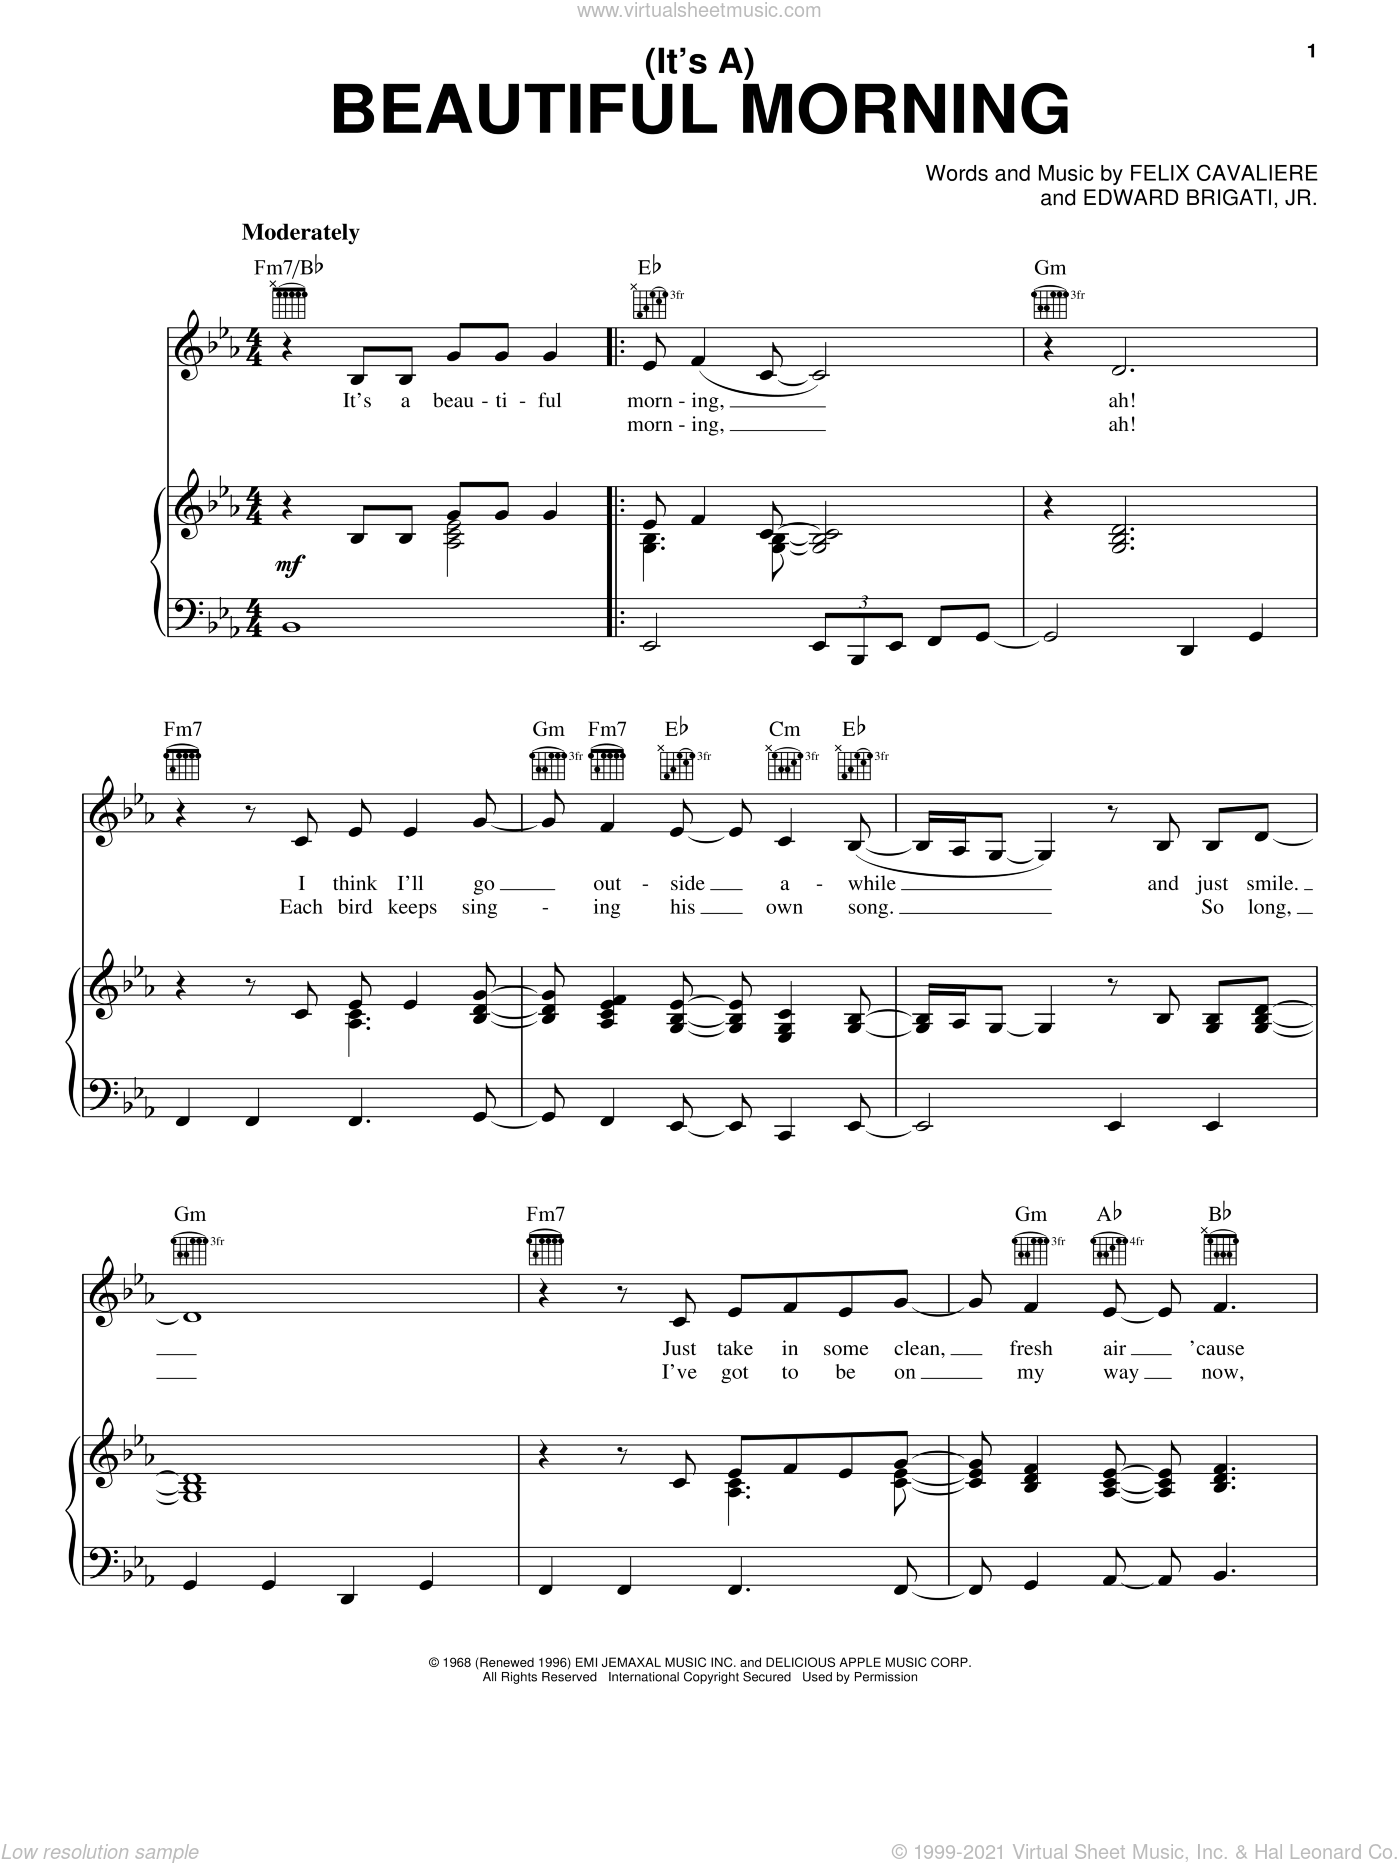 (It's A) Beautiful Morning sheet music for voice, piano or guitar by Felix Cavaliere and The Rascals